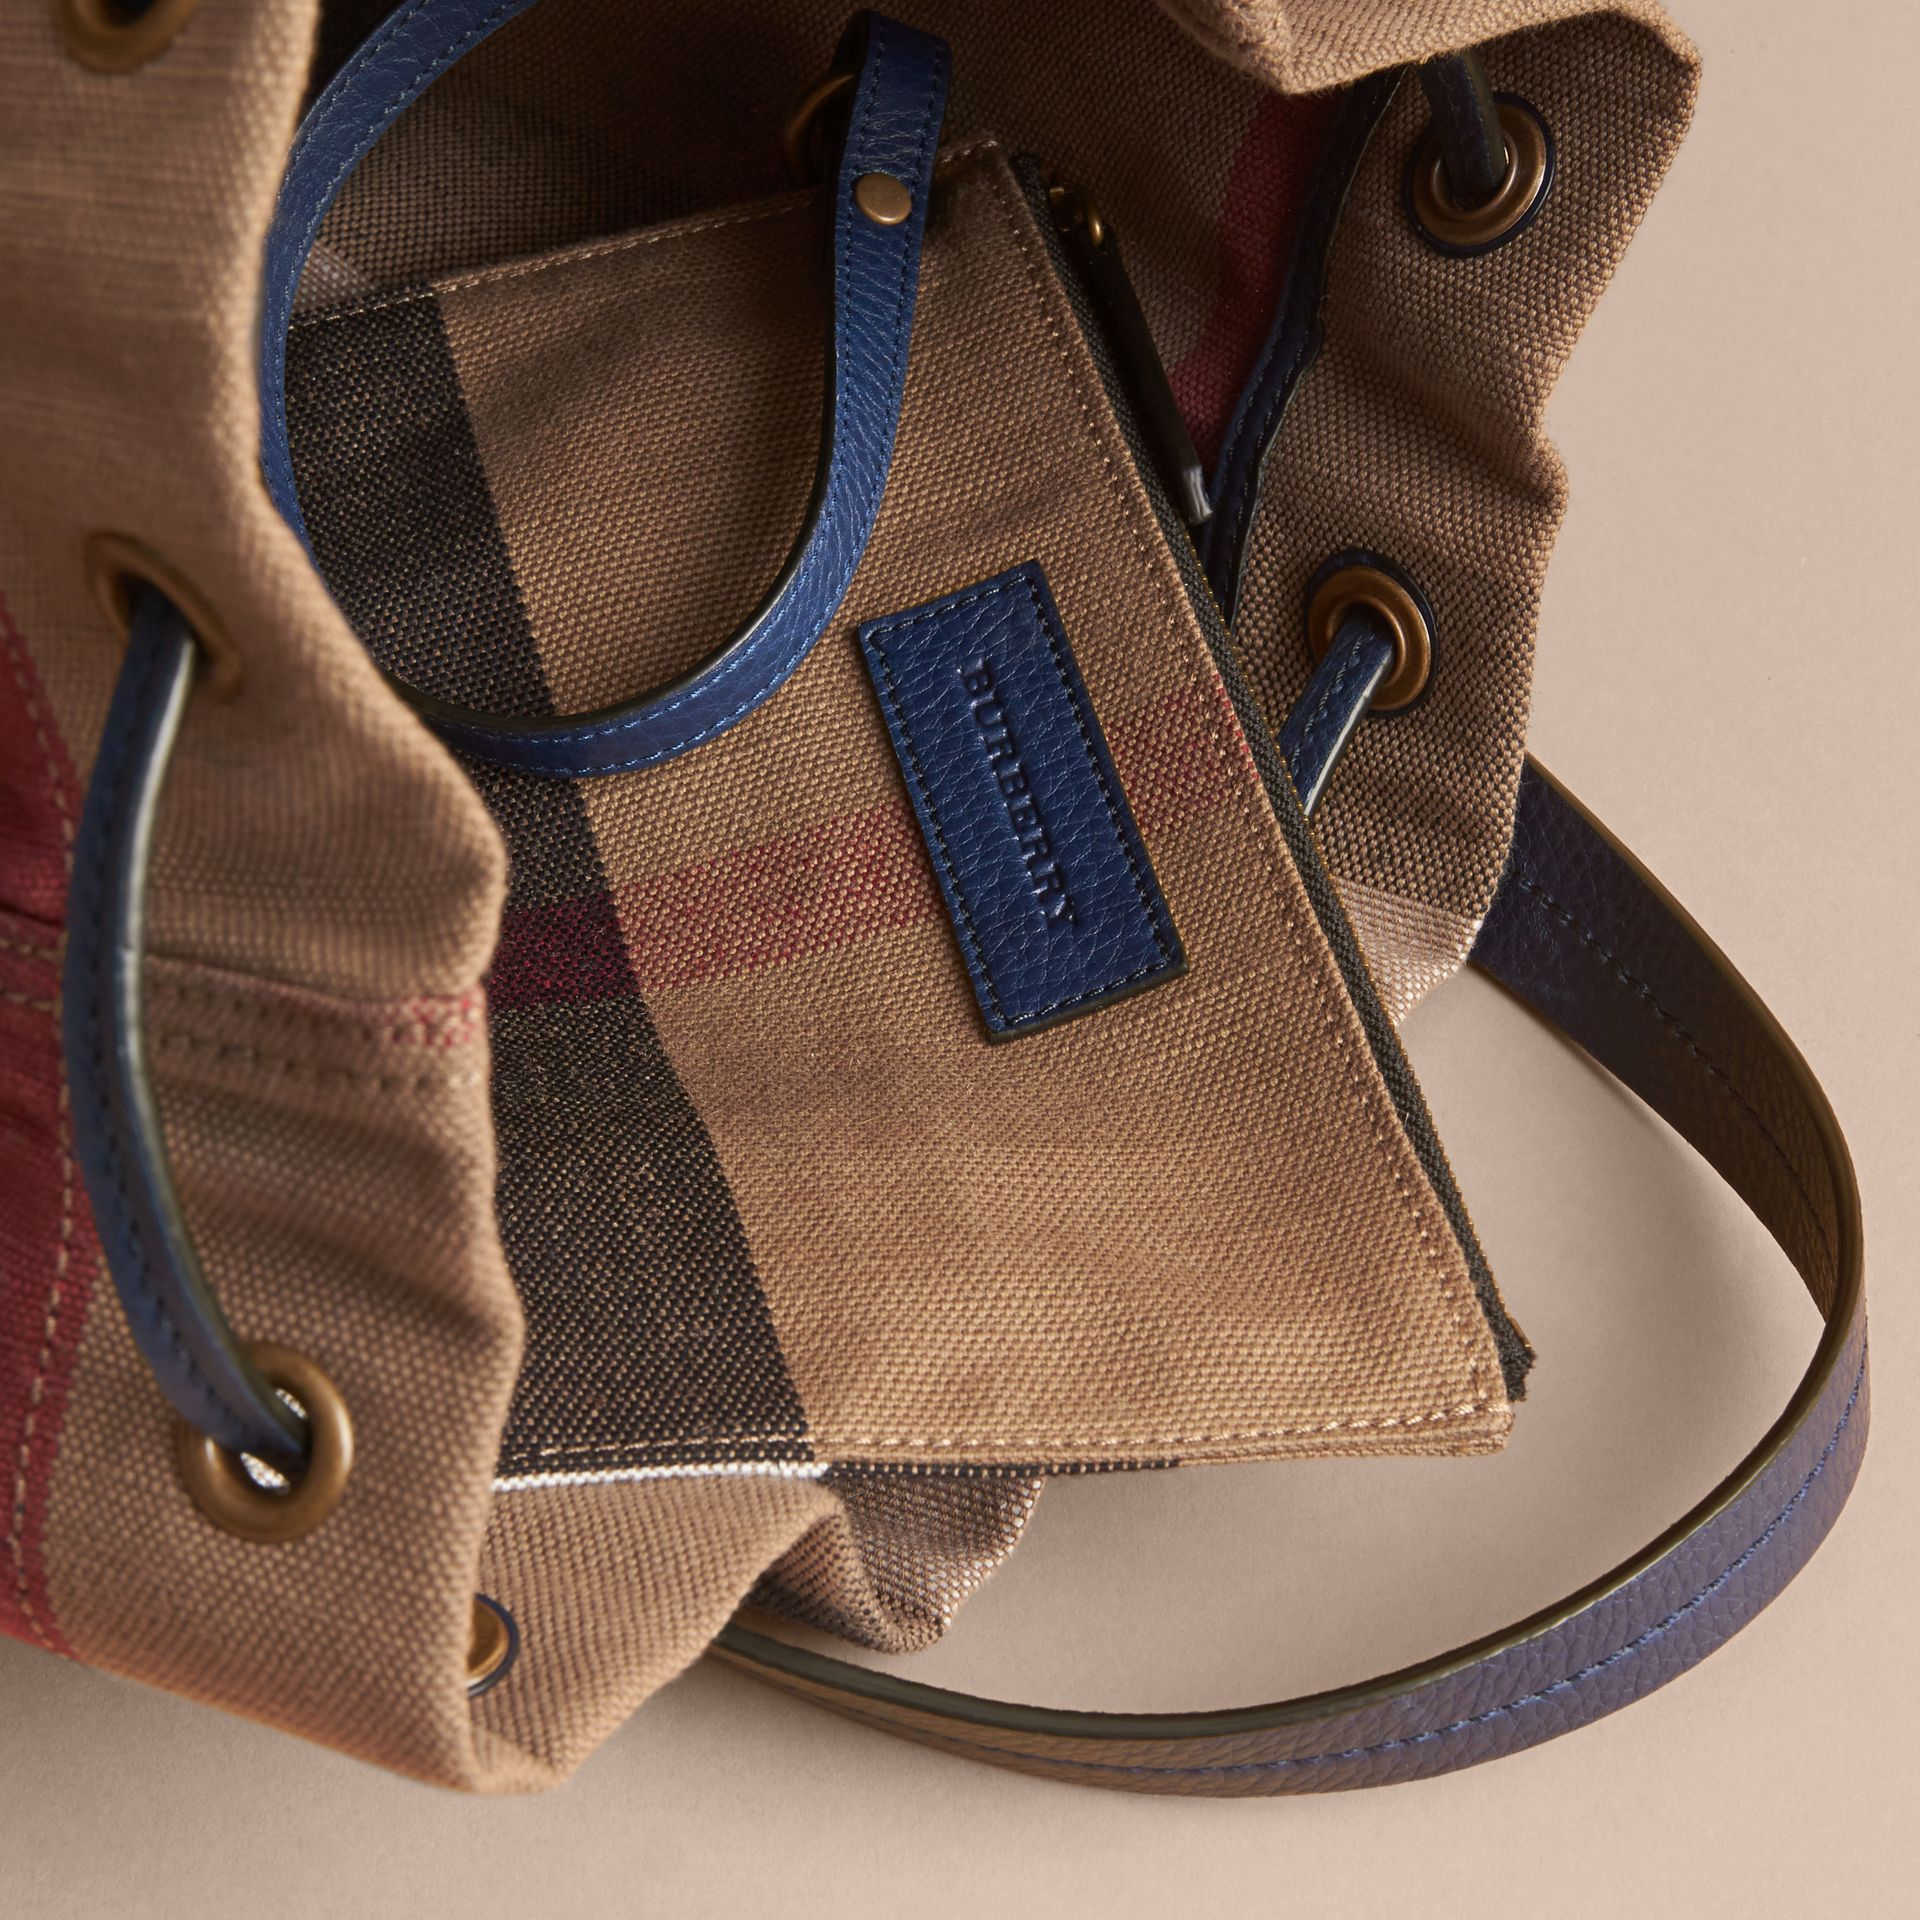 Canvas Check and Leather Bucket Bag in Brilliant Navy - Women | Burberry Hong Kong - gallery image 6